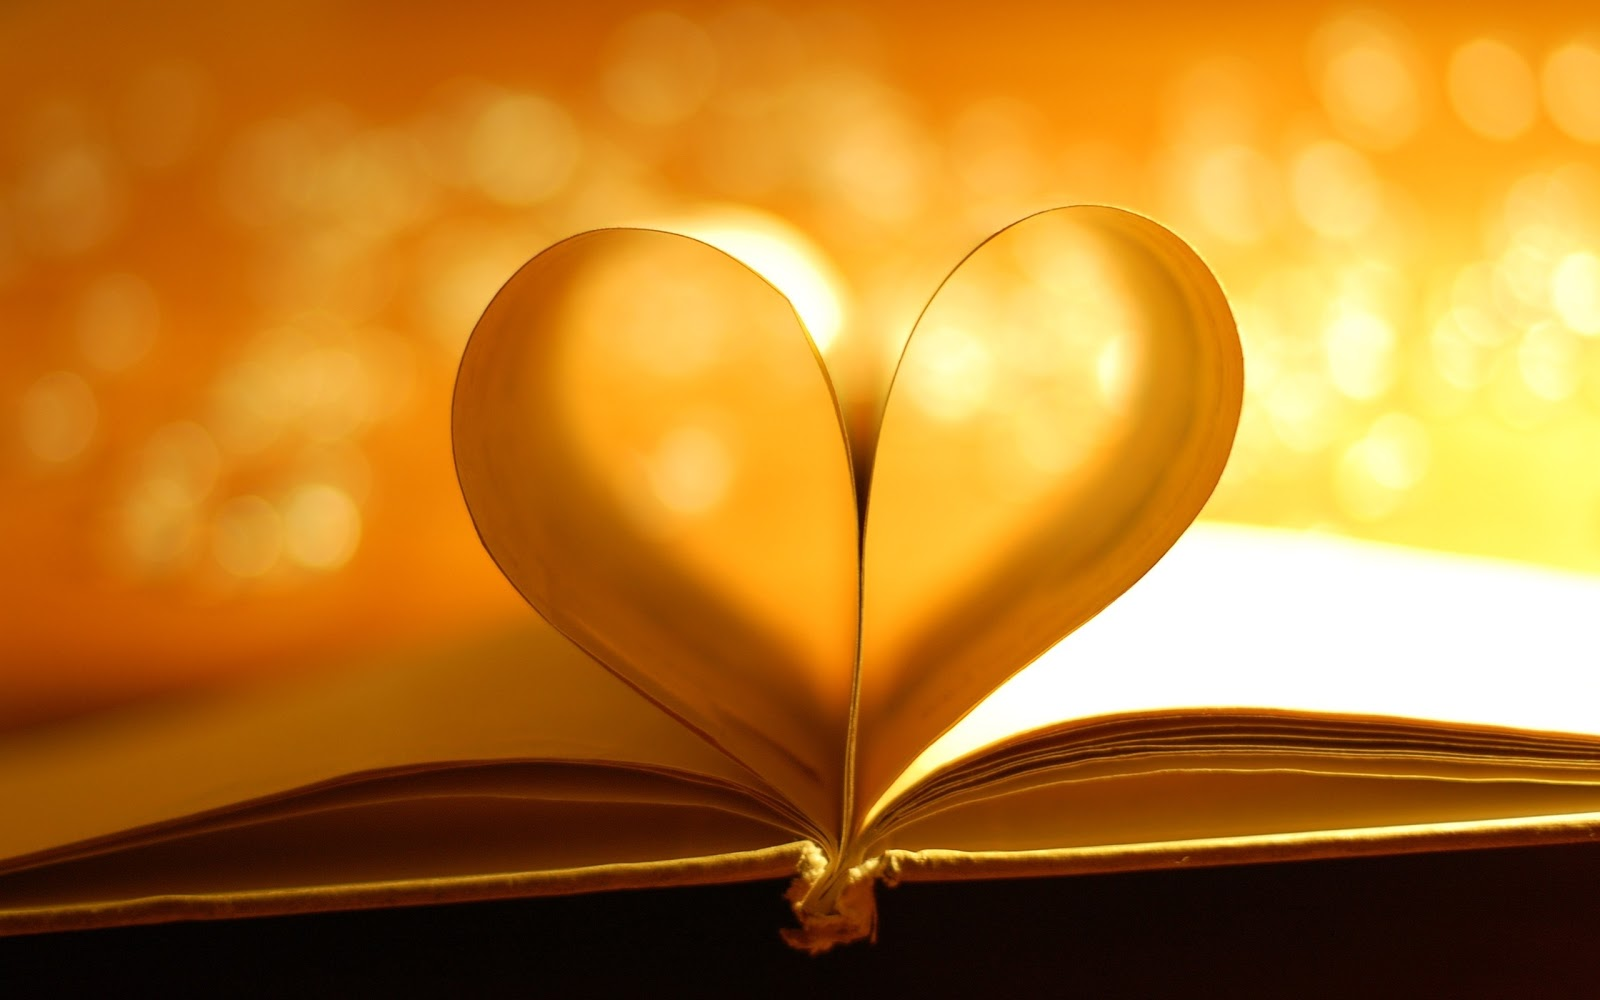 Book Pages Heart Light Photo HD Wallpaper | Love ...